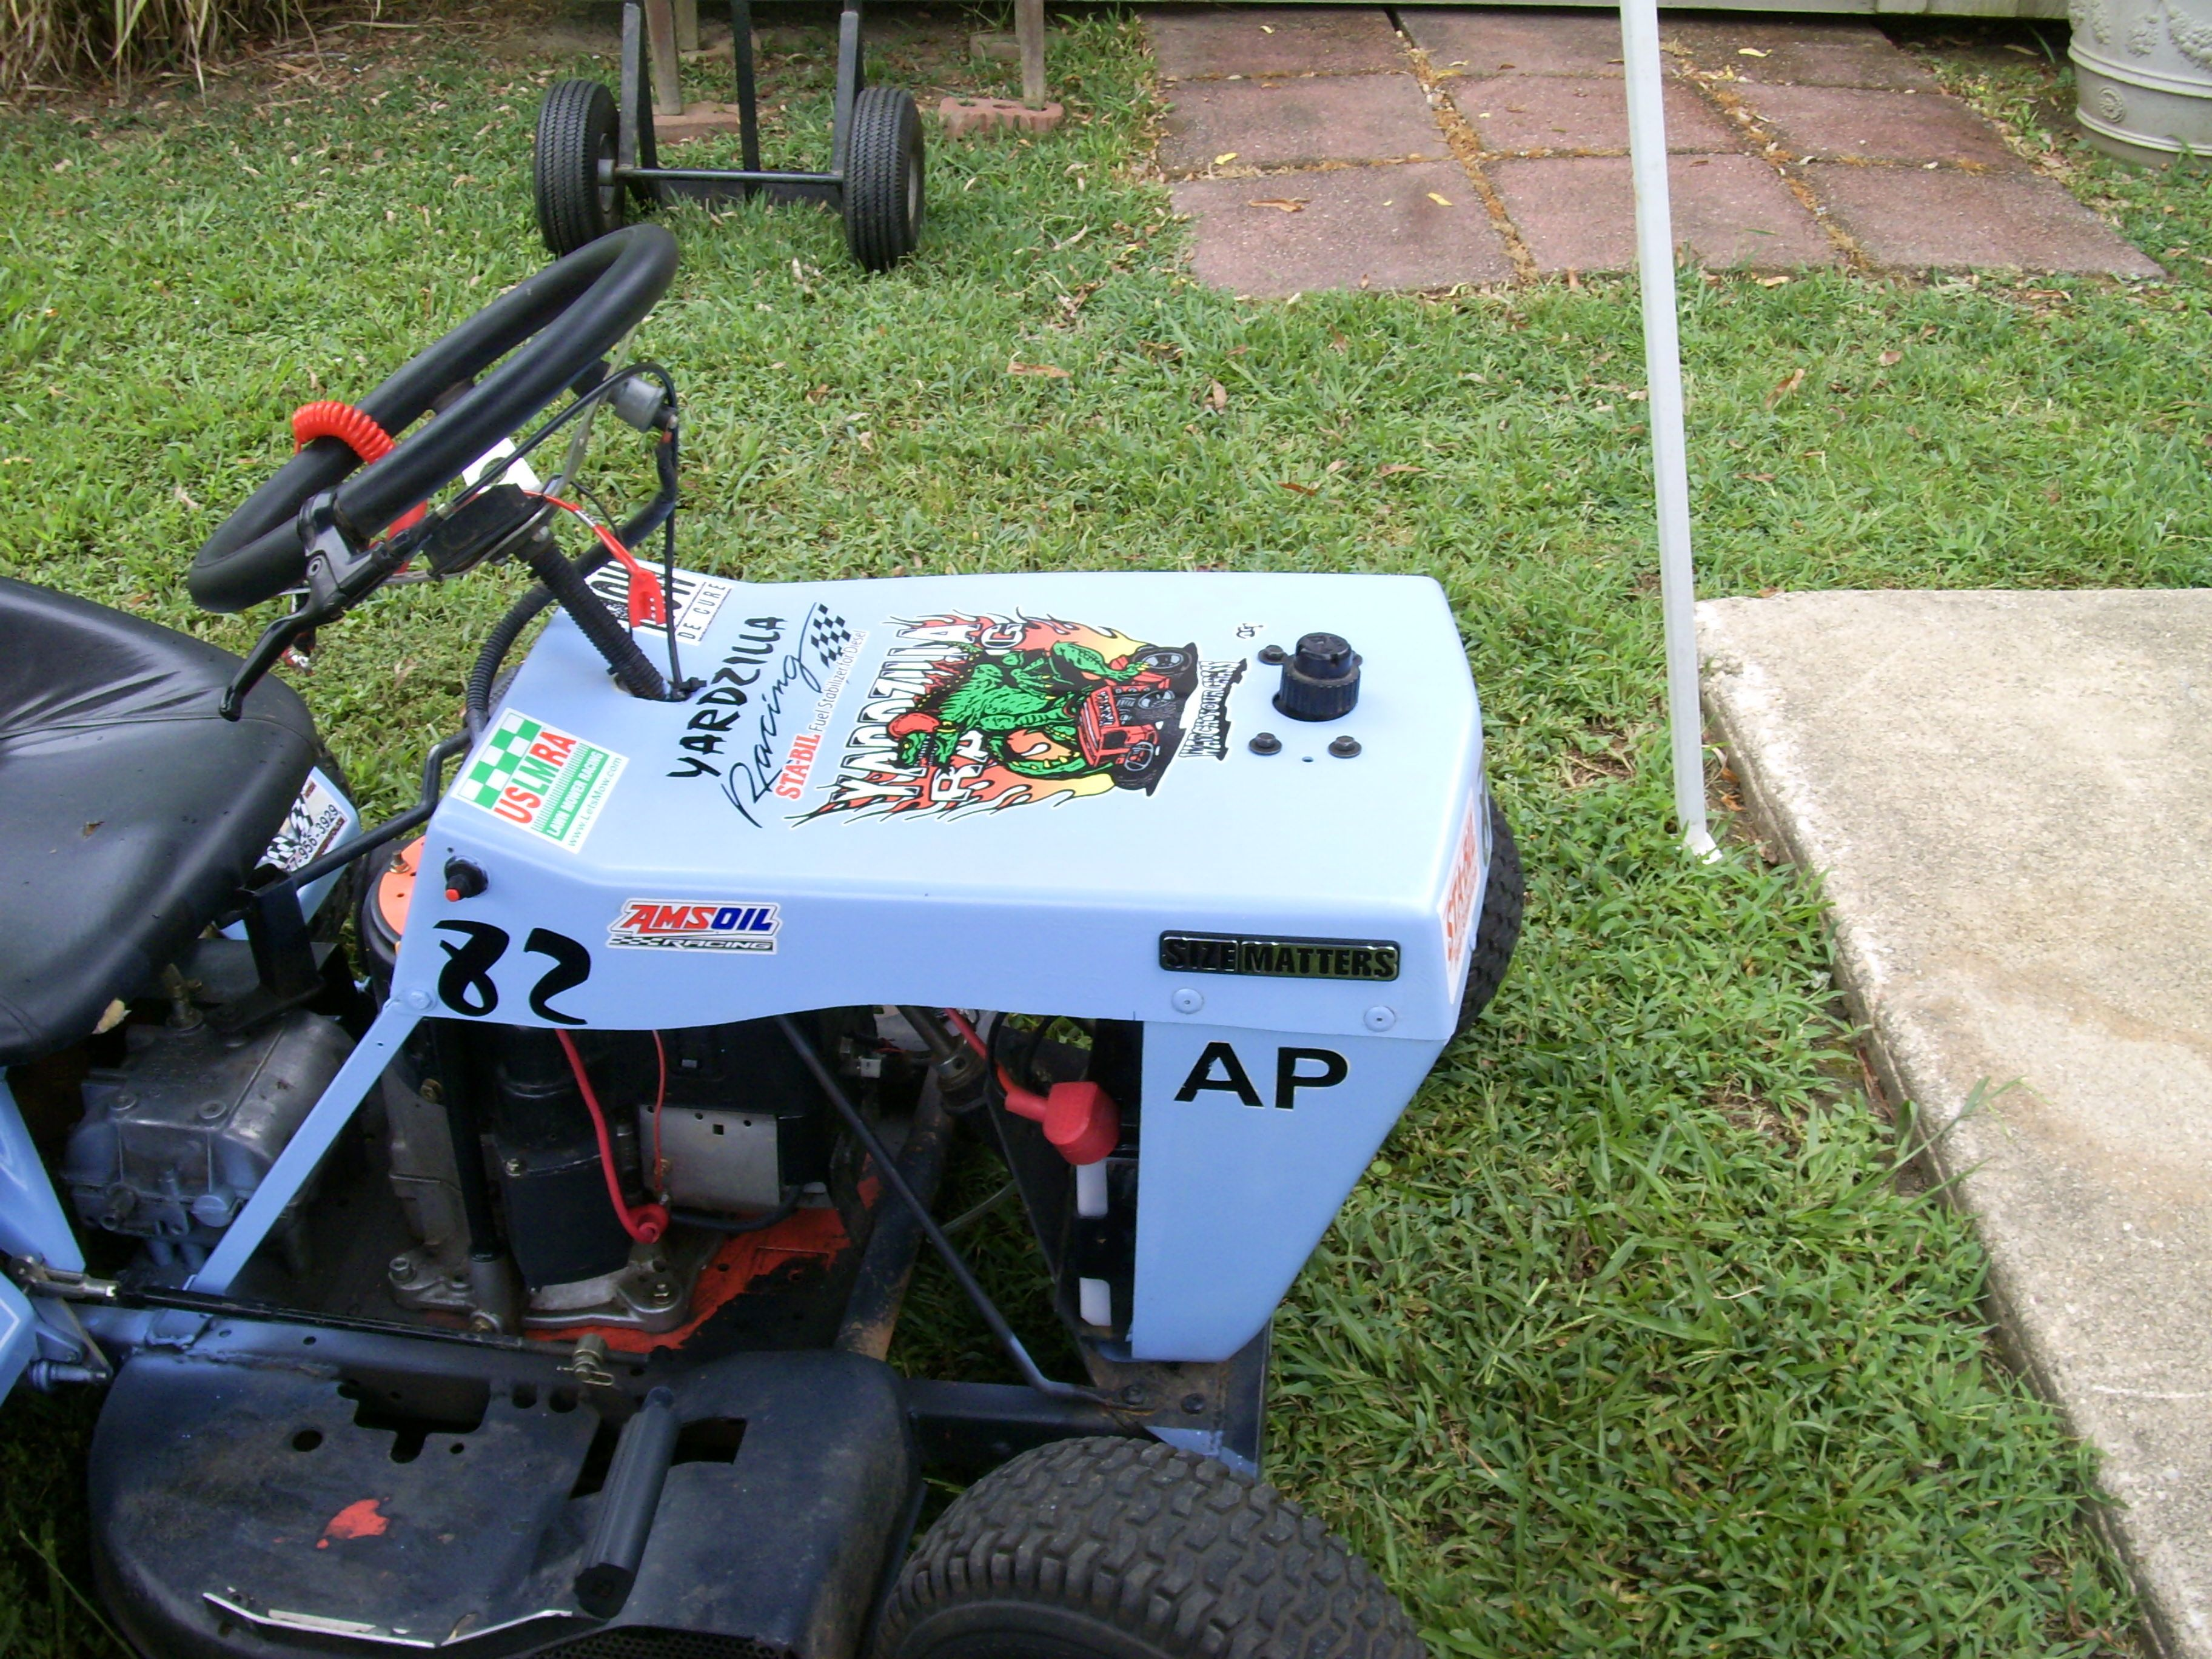 Ap Mowchine Side View Lawn Mower Racing Tractor Idea Lawn Tractor